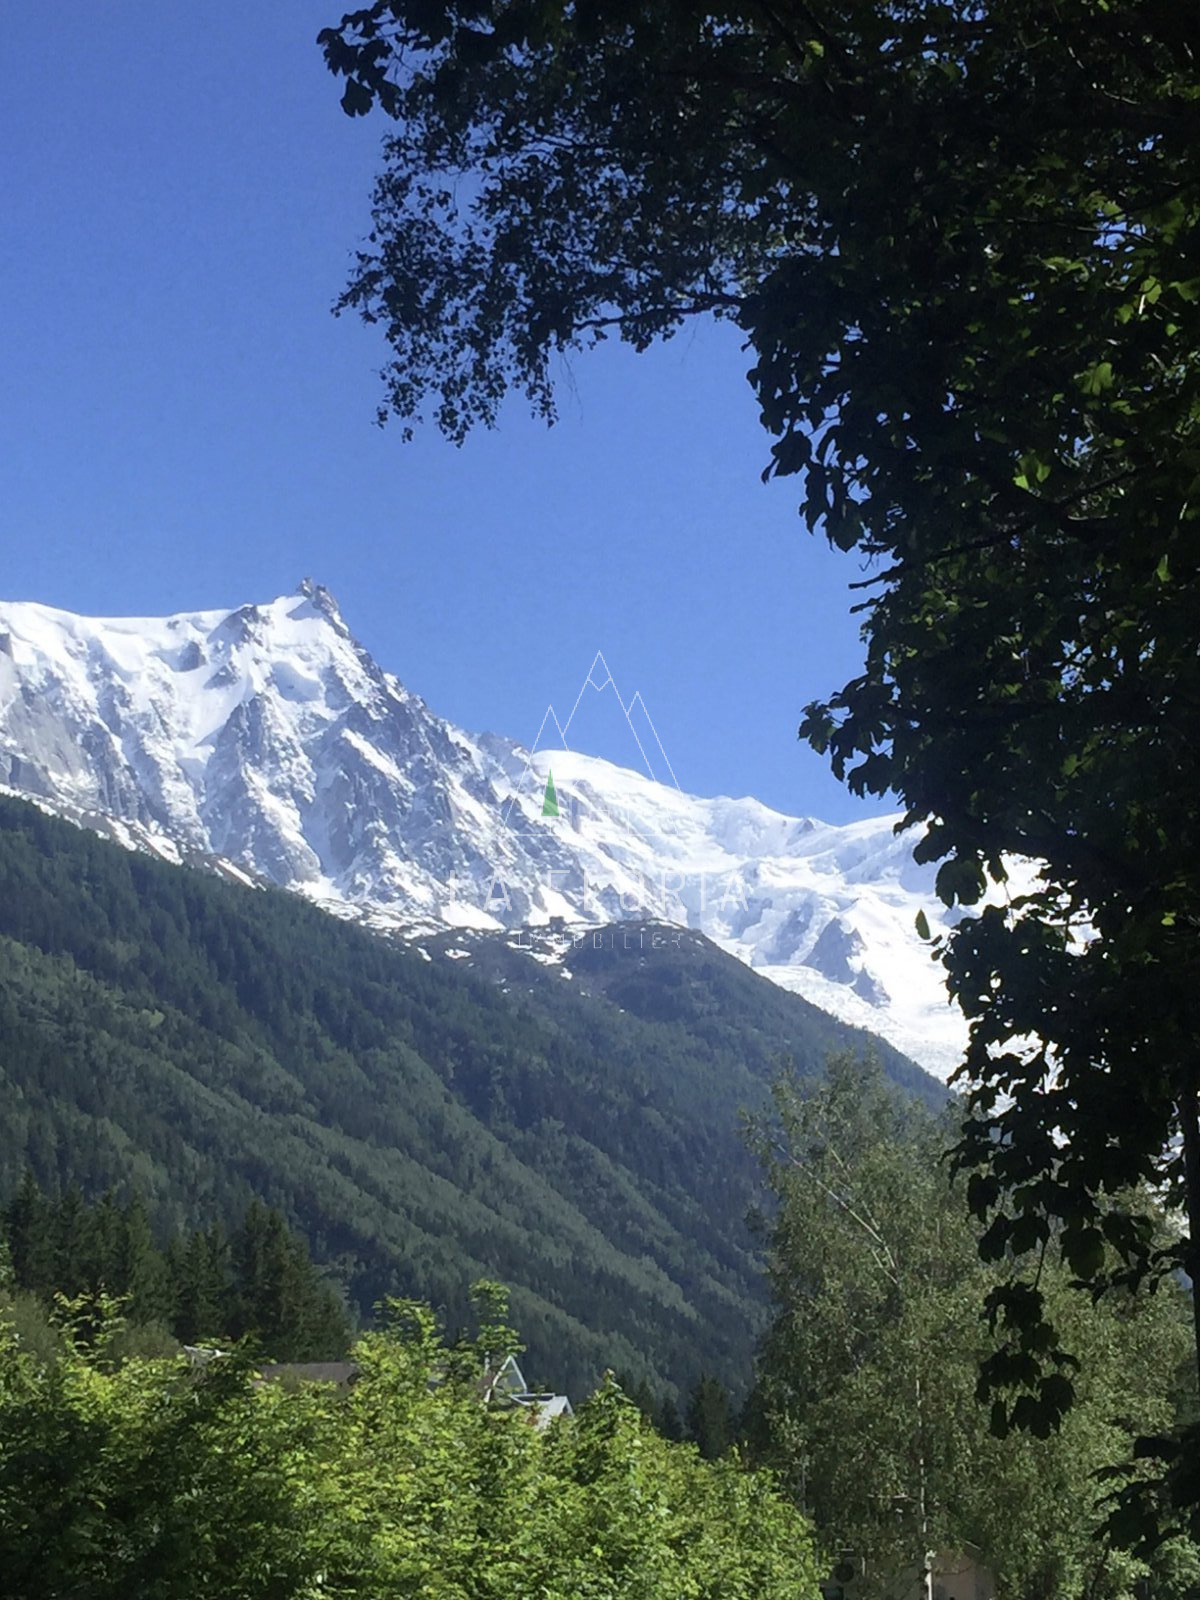 2079 M2 PLOT OF PRIME LAND WITH PLANNING PERMISSION FOR A CHALET OF 400 M2, CHAMONIX